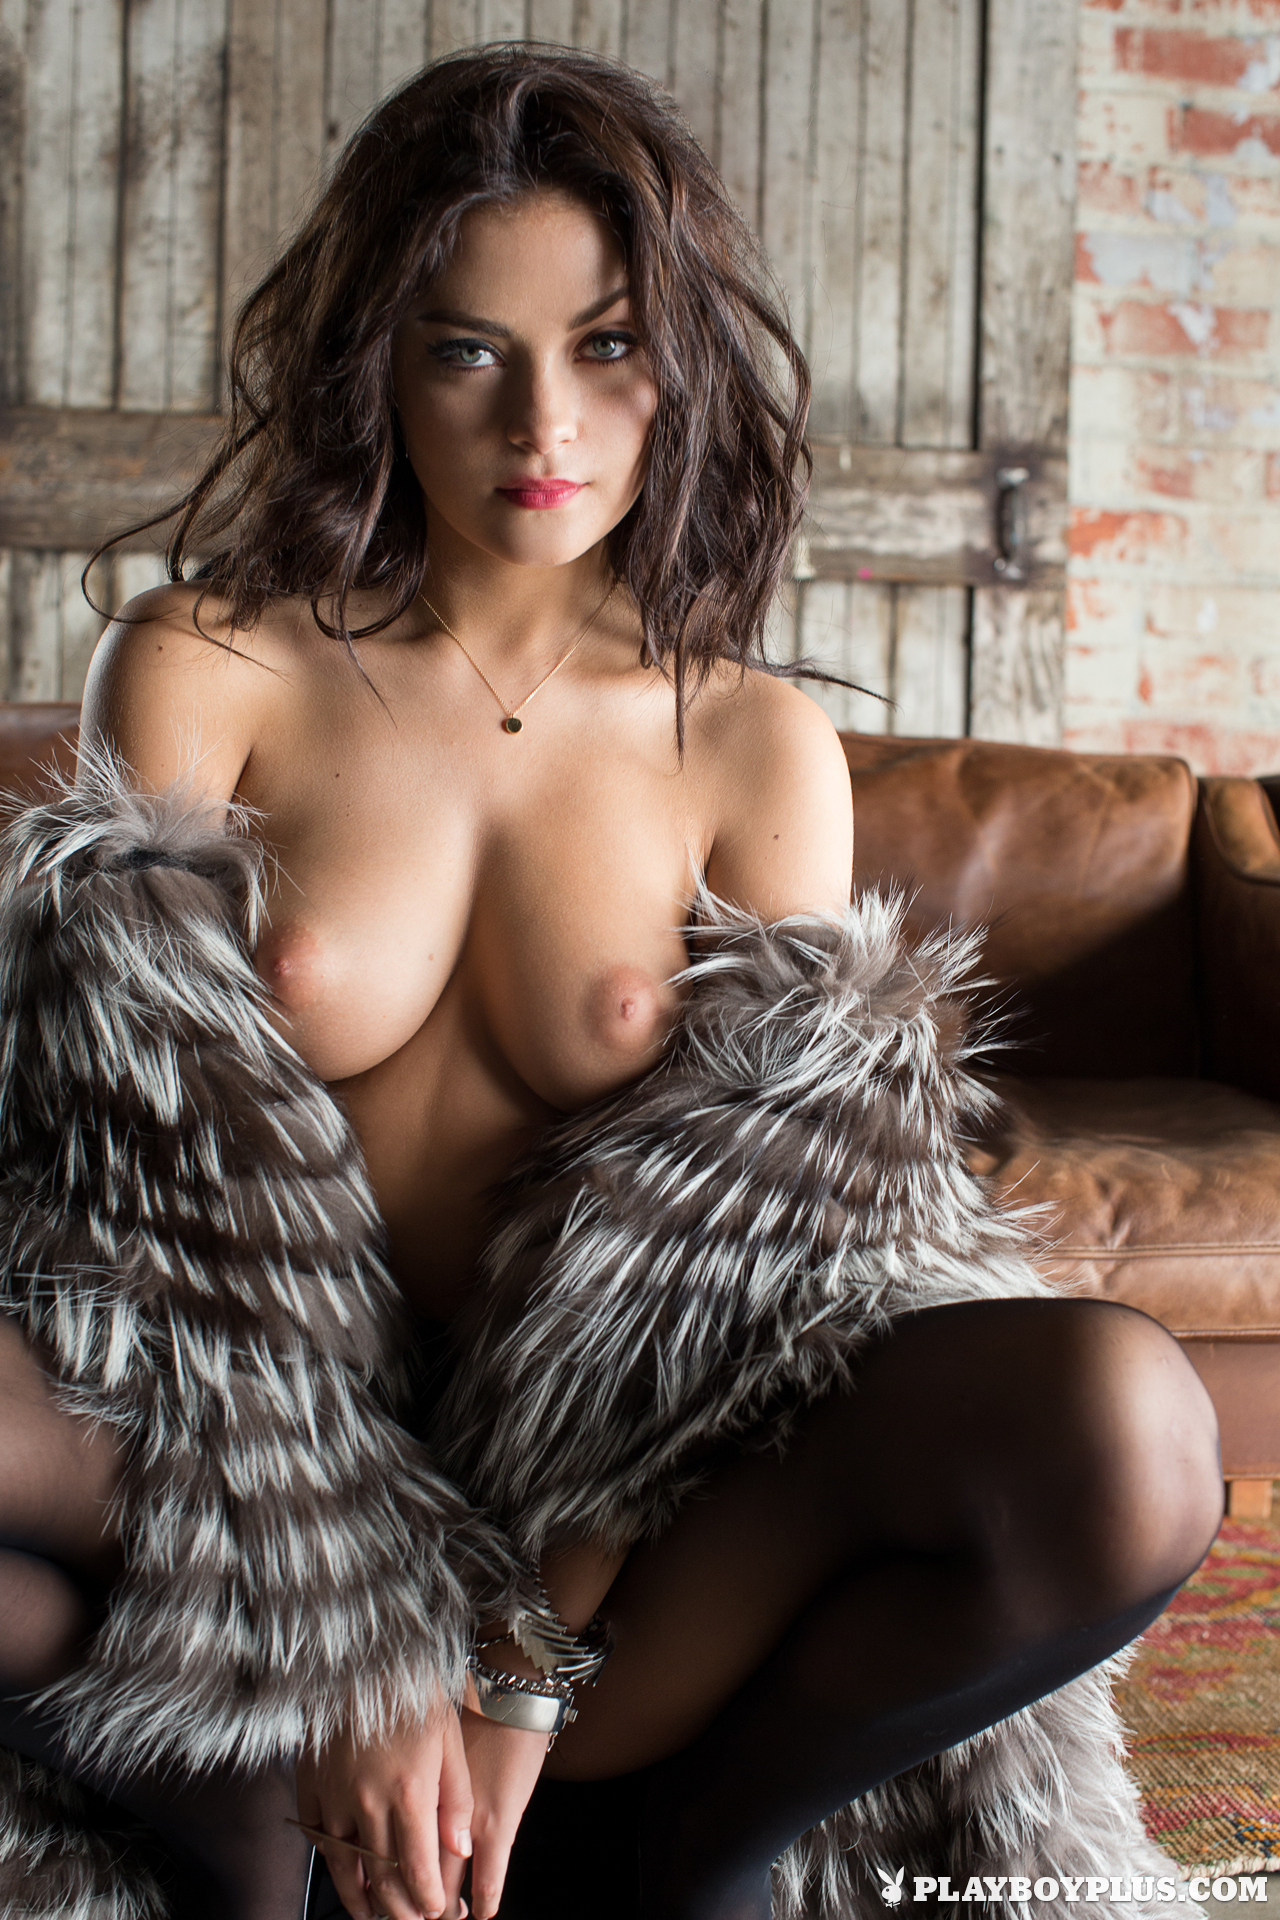 Wild and naked women pictures